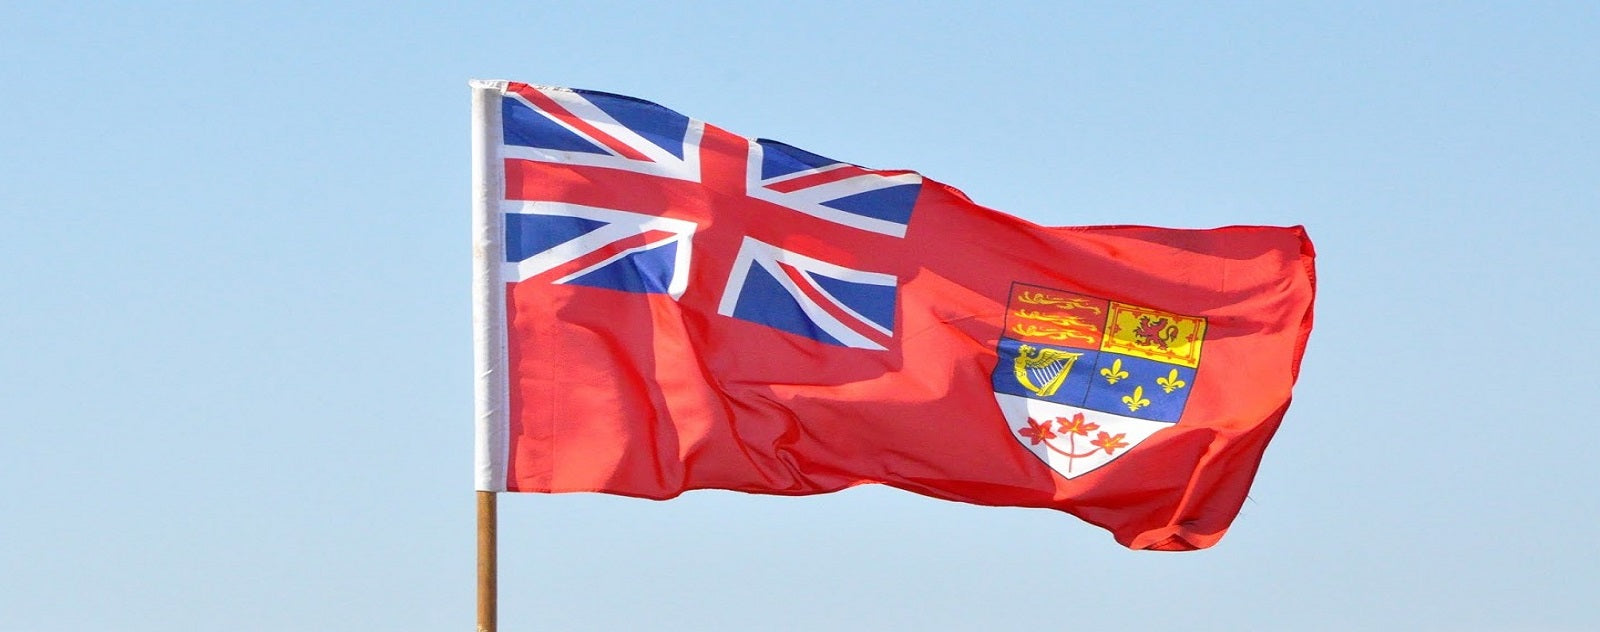 Red Ensign Canada